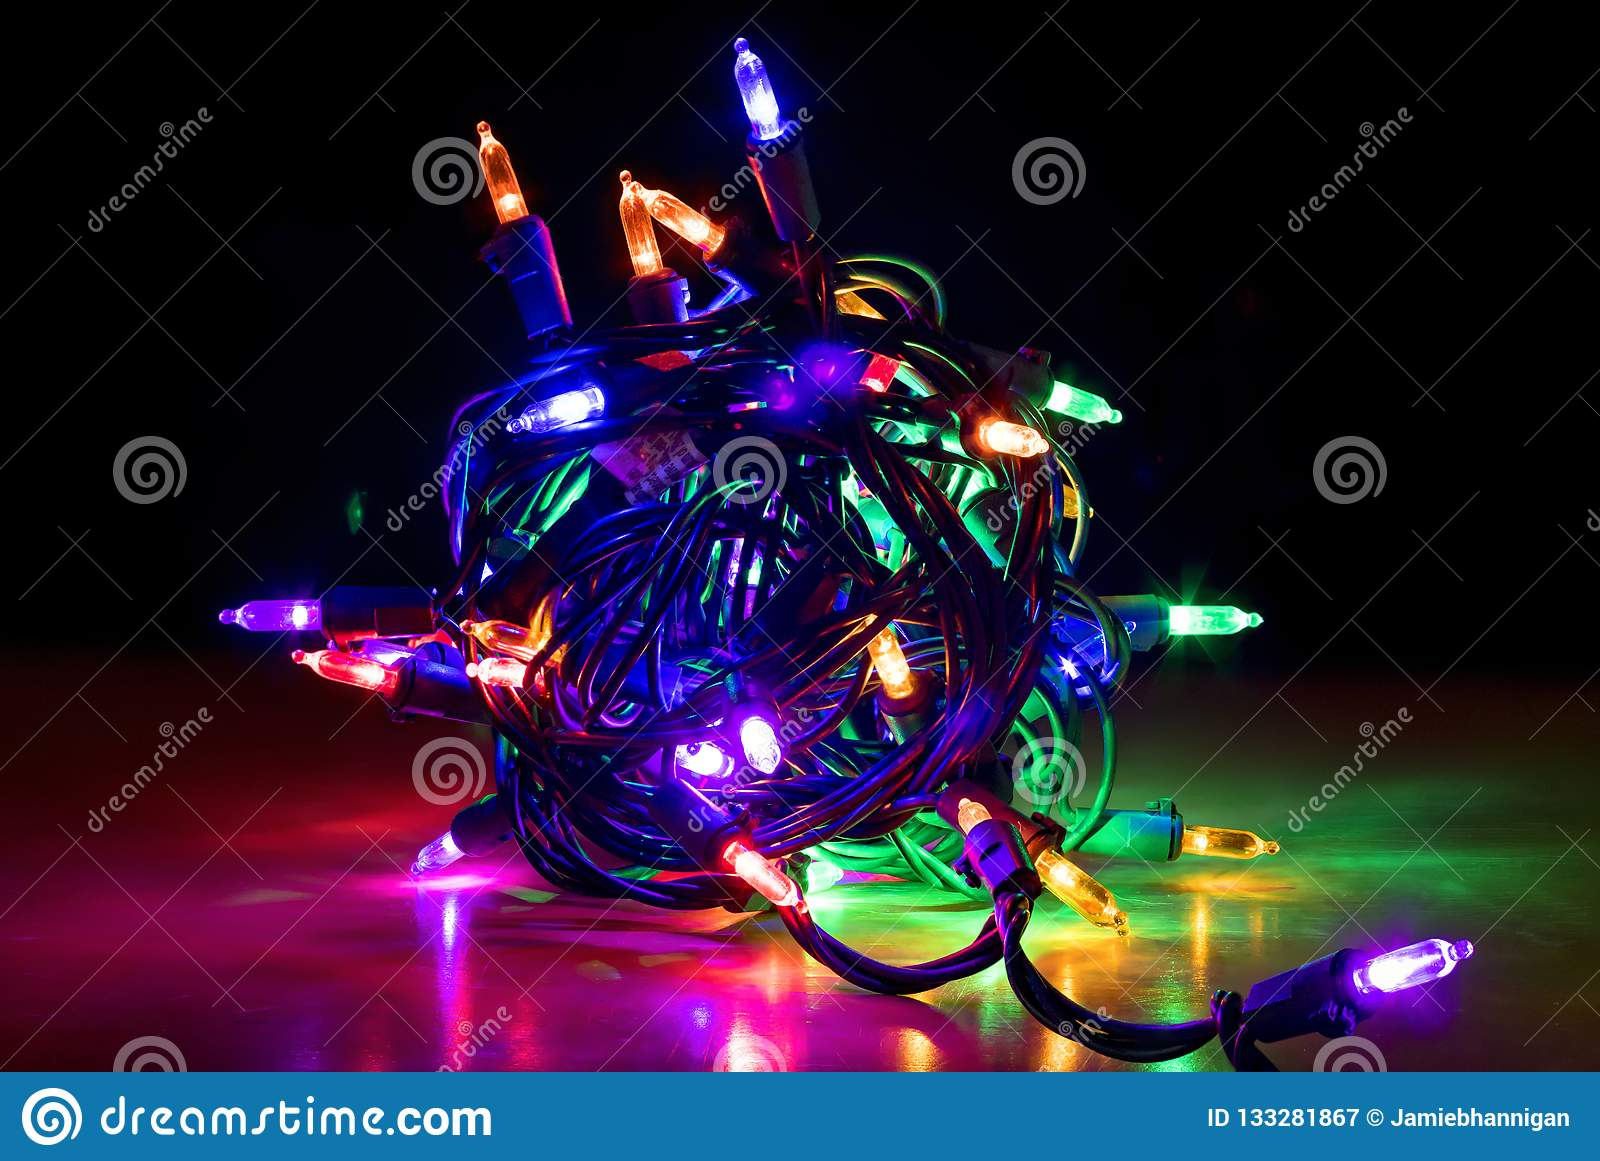 Bright Led Christmas Lights.Close Up Colorful Glowing Bundle Of Led Christmas Lights